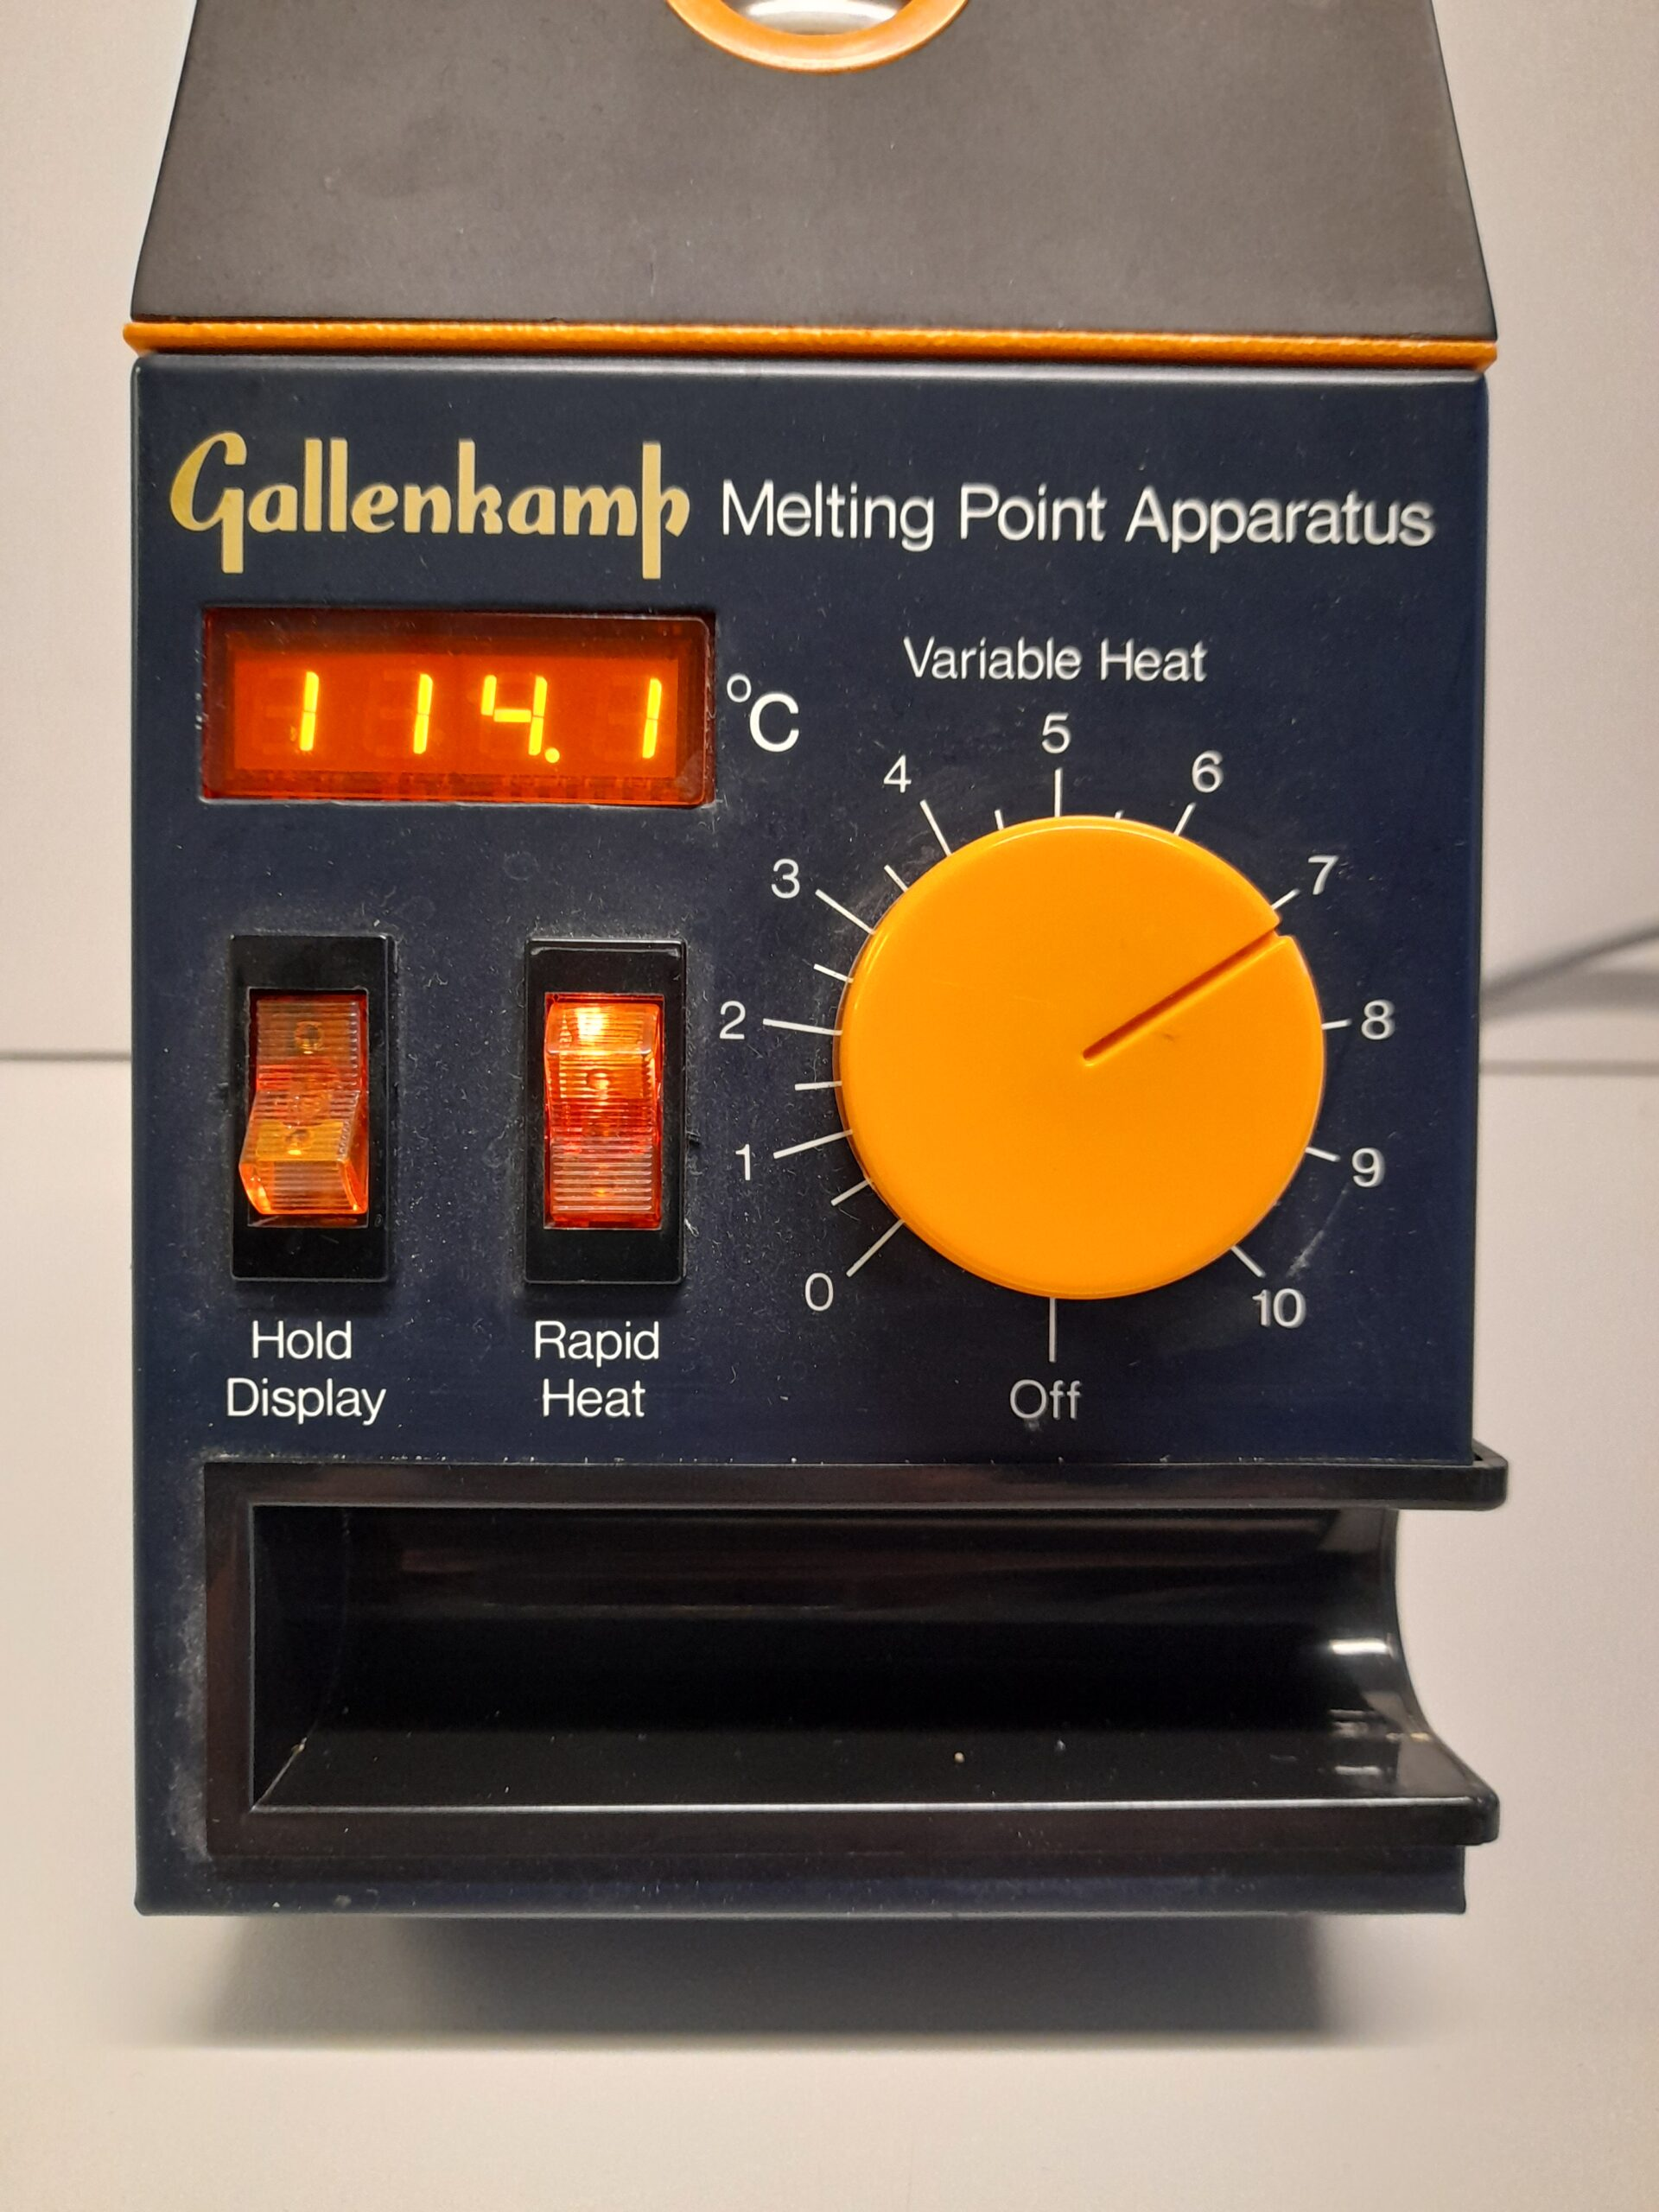 1367 - Used Gallenkamp Melting point apparatus - S-A-LE